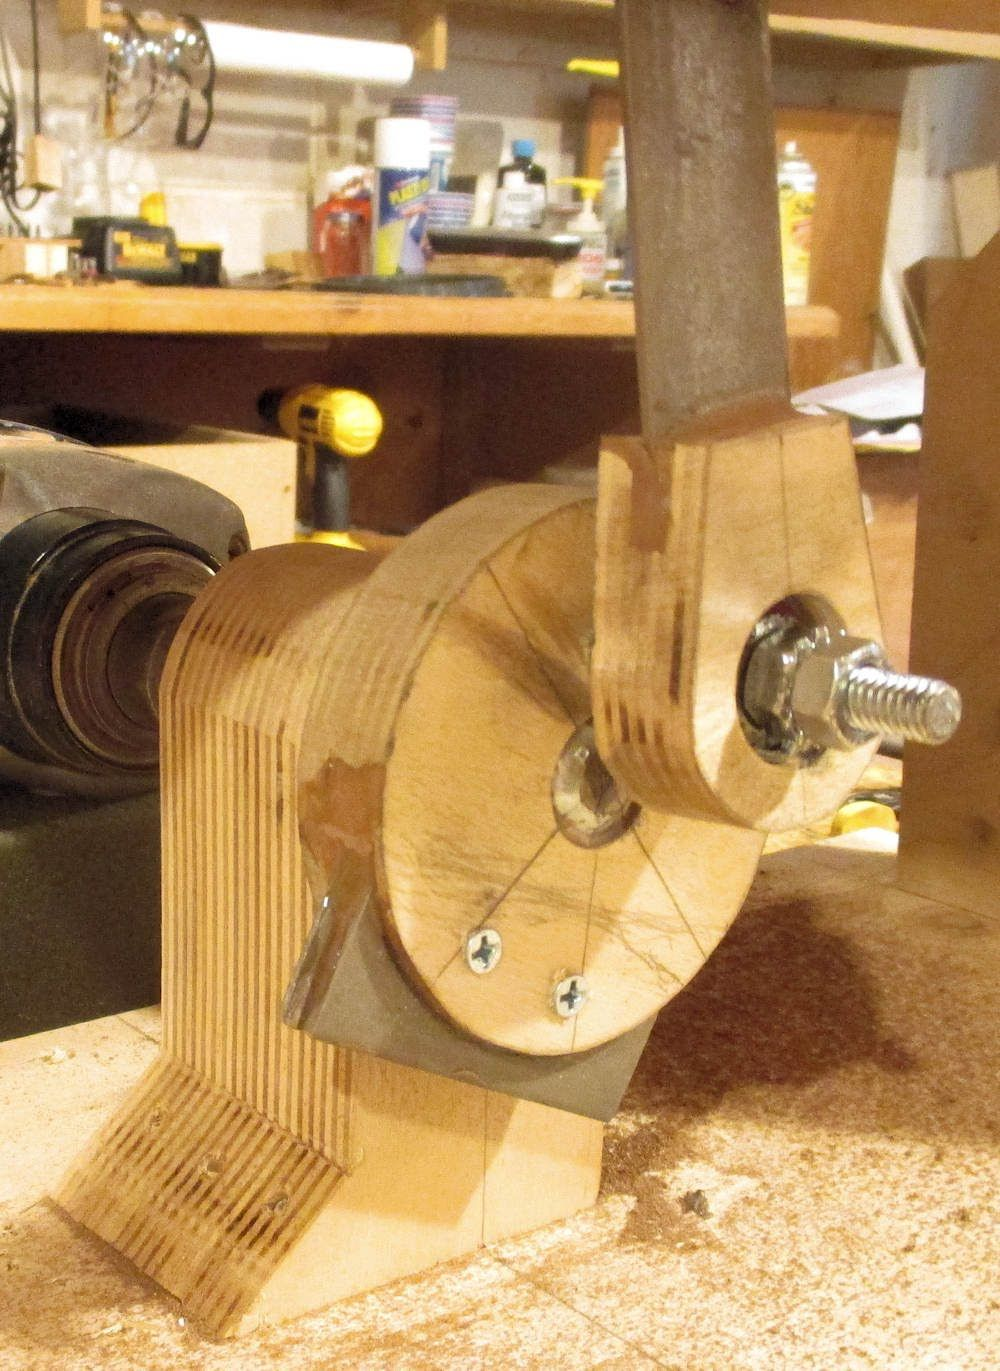 The Original Build Of My Wooden Scroll Saw Had Considerable Vibration When In Use I Changed The Enti Scroll Saw Wood Working For Beginners Wood Furniture Legs